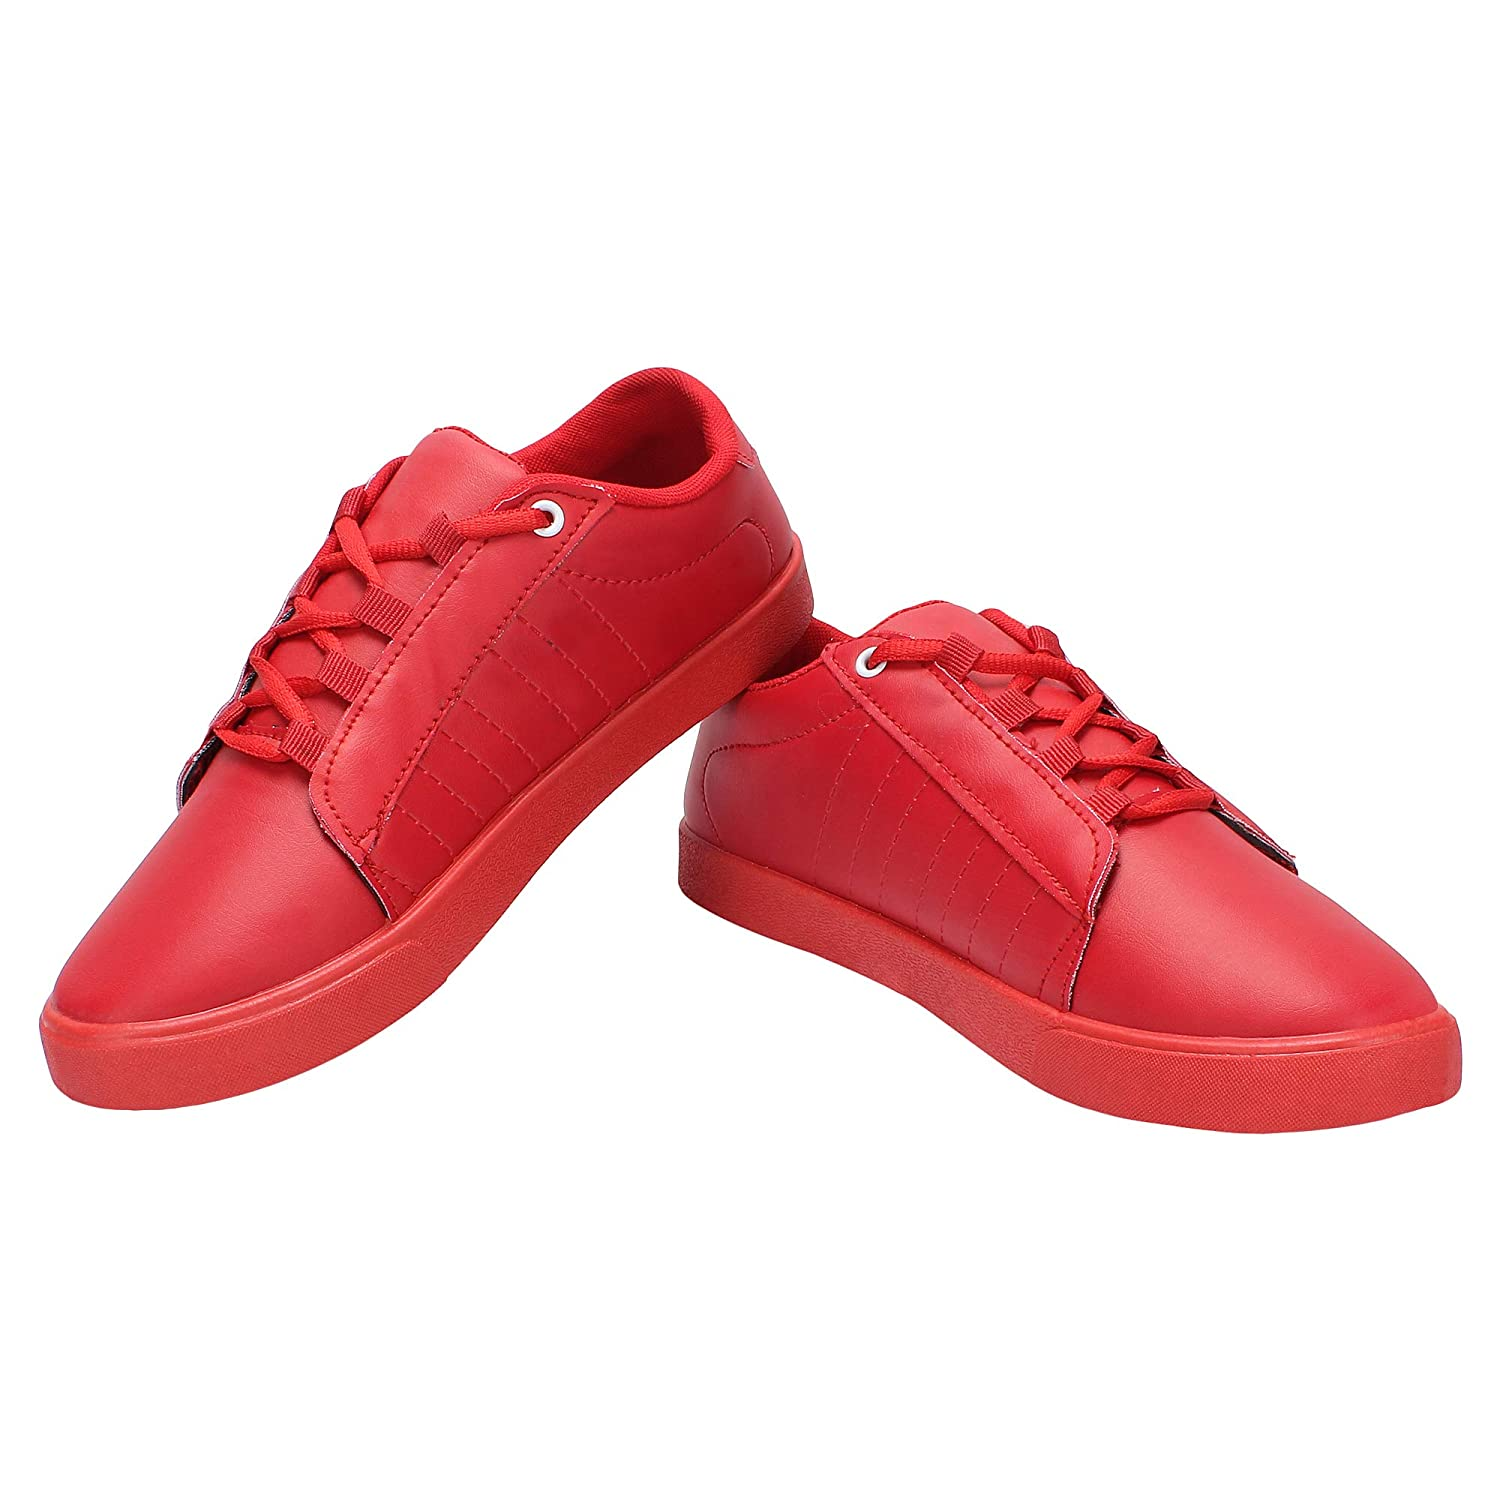 SIDEWOK Casual Red Colour Sneaker Shoes